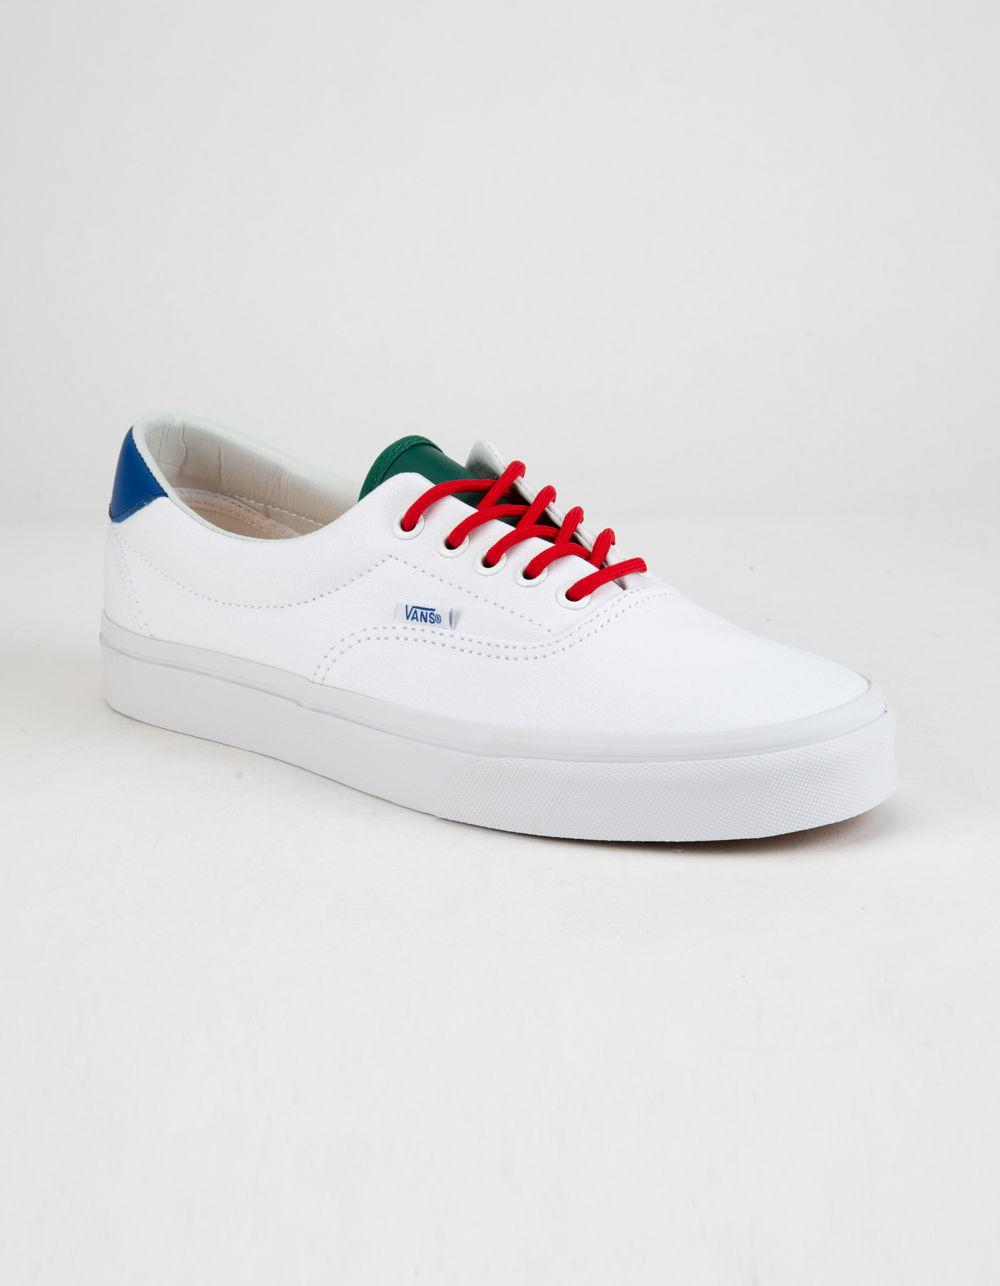 Lyst - Vans Yacht Club Era 59 True White Mens Shoes in White for Men 07740e9c0